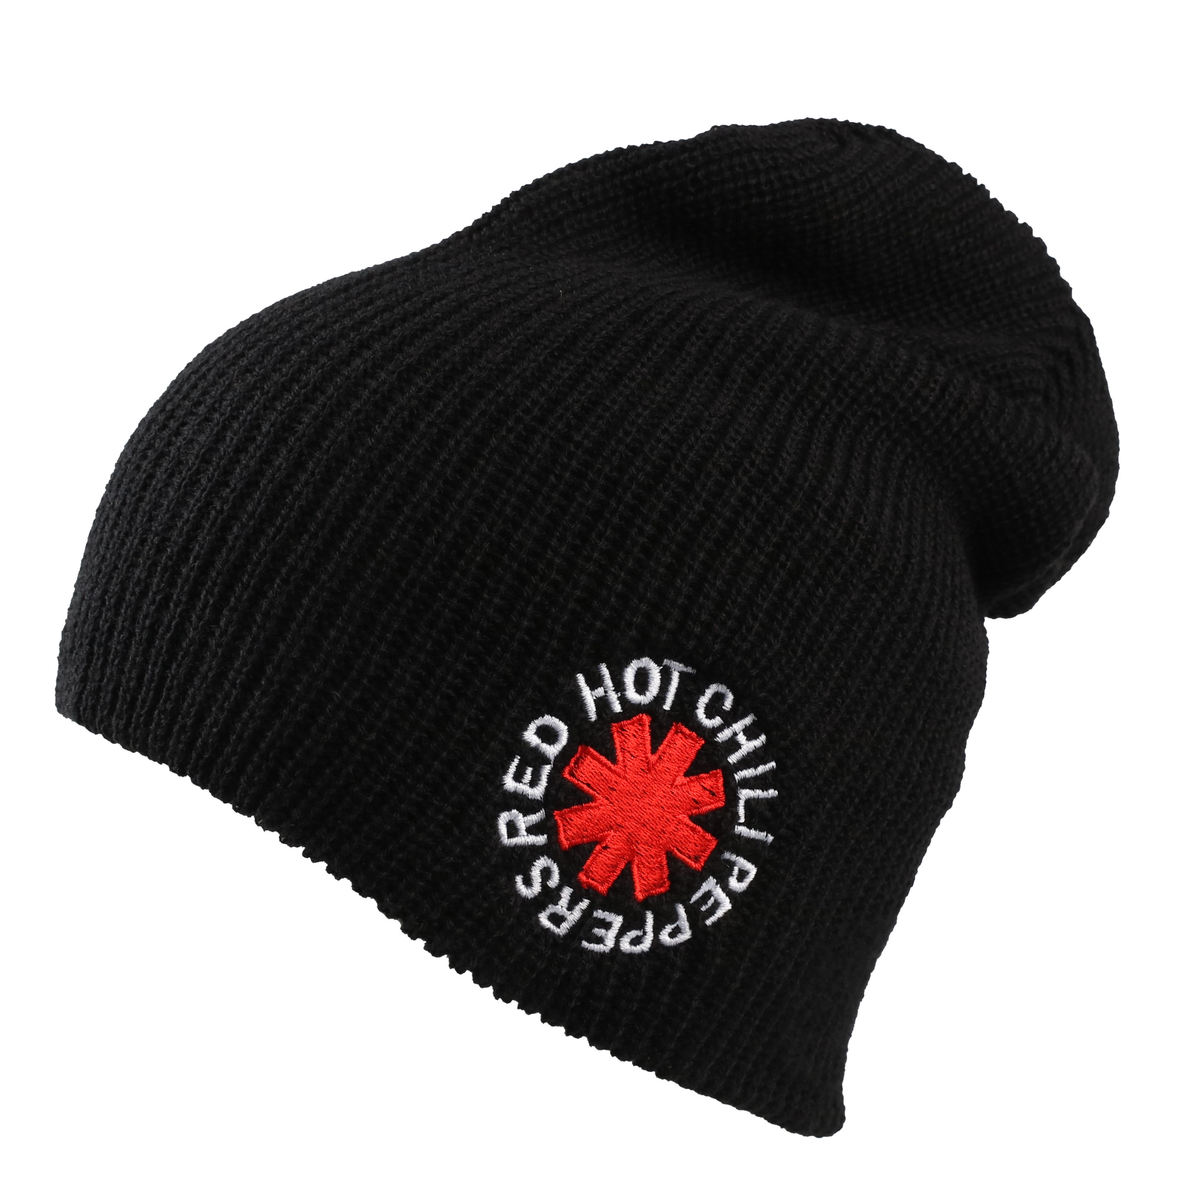 kulich Red Hot Chili Peppers - Asterisk - Black - RTRHCBEBAST